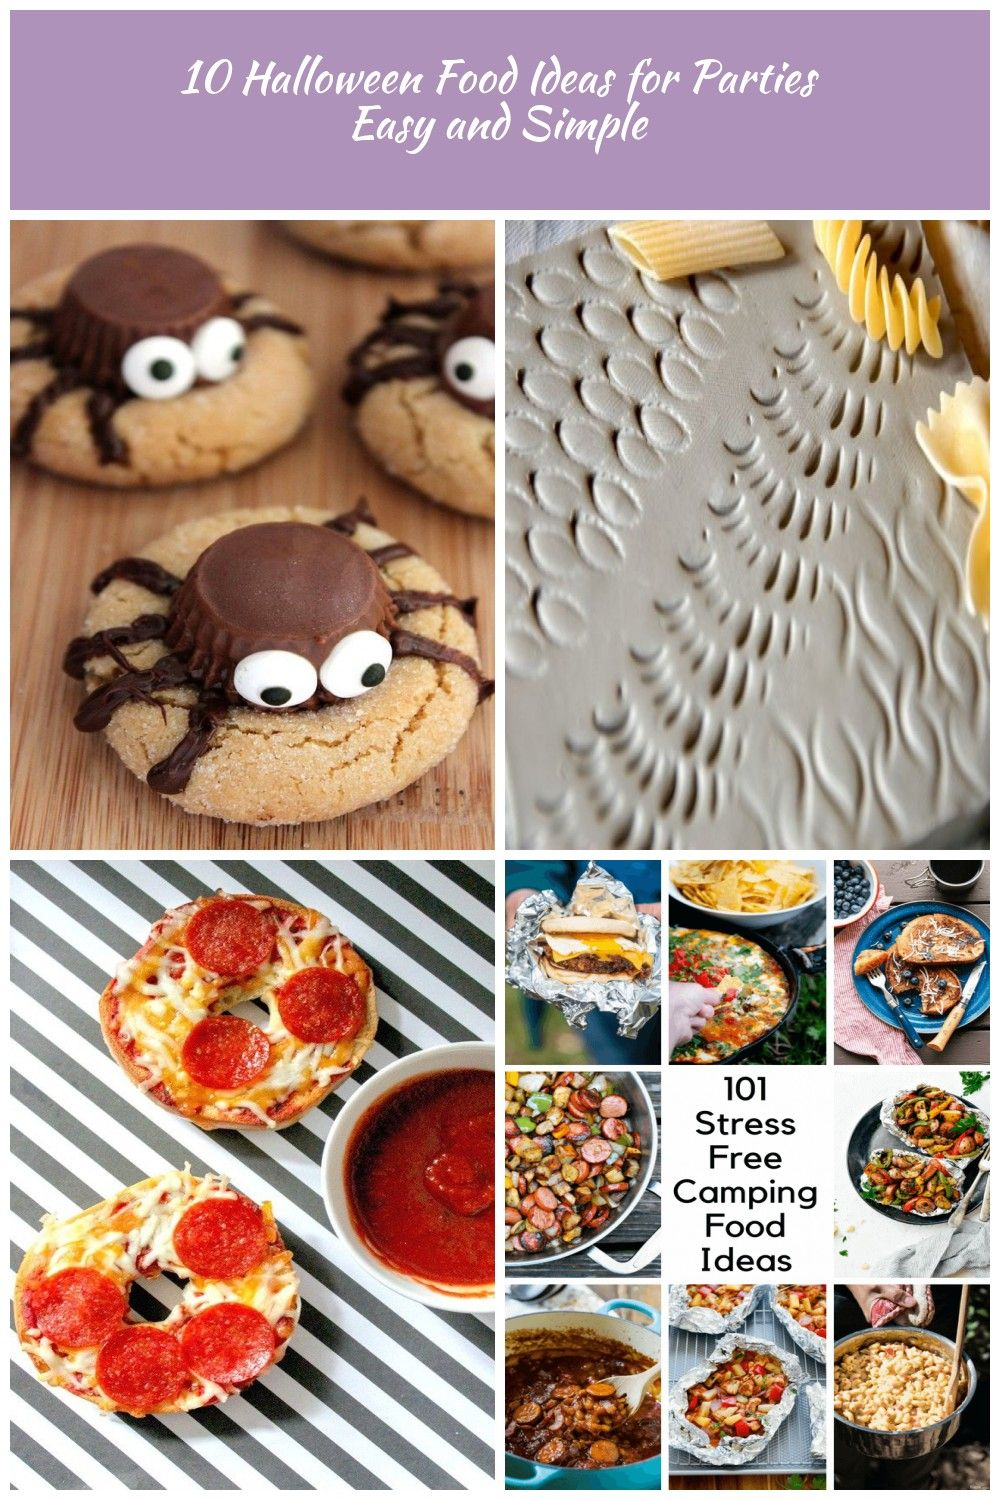 Check out our latest article halloween food ideas for parties easy and simple, halloween food ideas for kids dinner, halloween food for party appetizers easy and halloween food treats easy. Also know halloween food potluck, creepy halloween food appetizers, halloween food appetizers parties funny and halloween food appetizers easy. Get Ideas on halloween food dinner meals, halloween food dinner party, halloween food dinner main dishes, creepy halloween food appetizers & halloween food recipes ki #halloweenpotluckideas